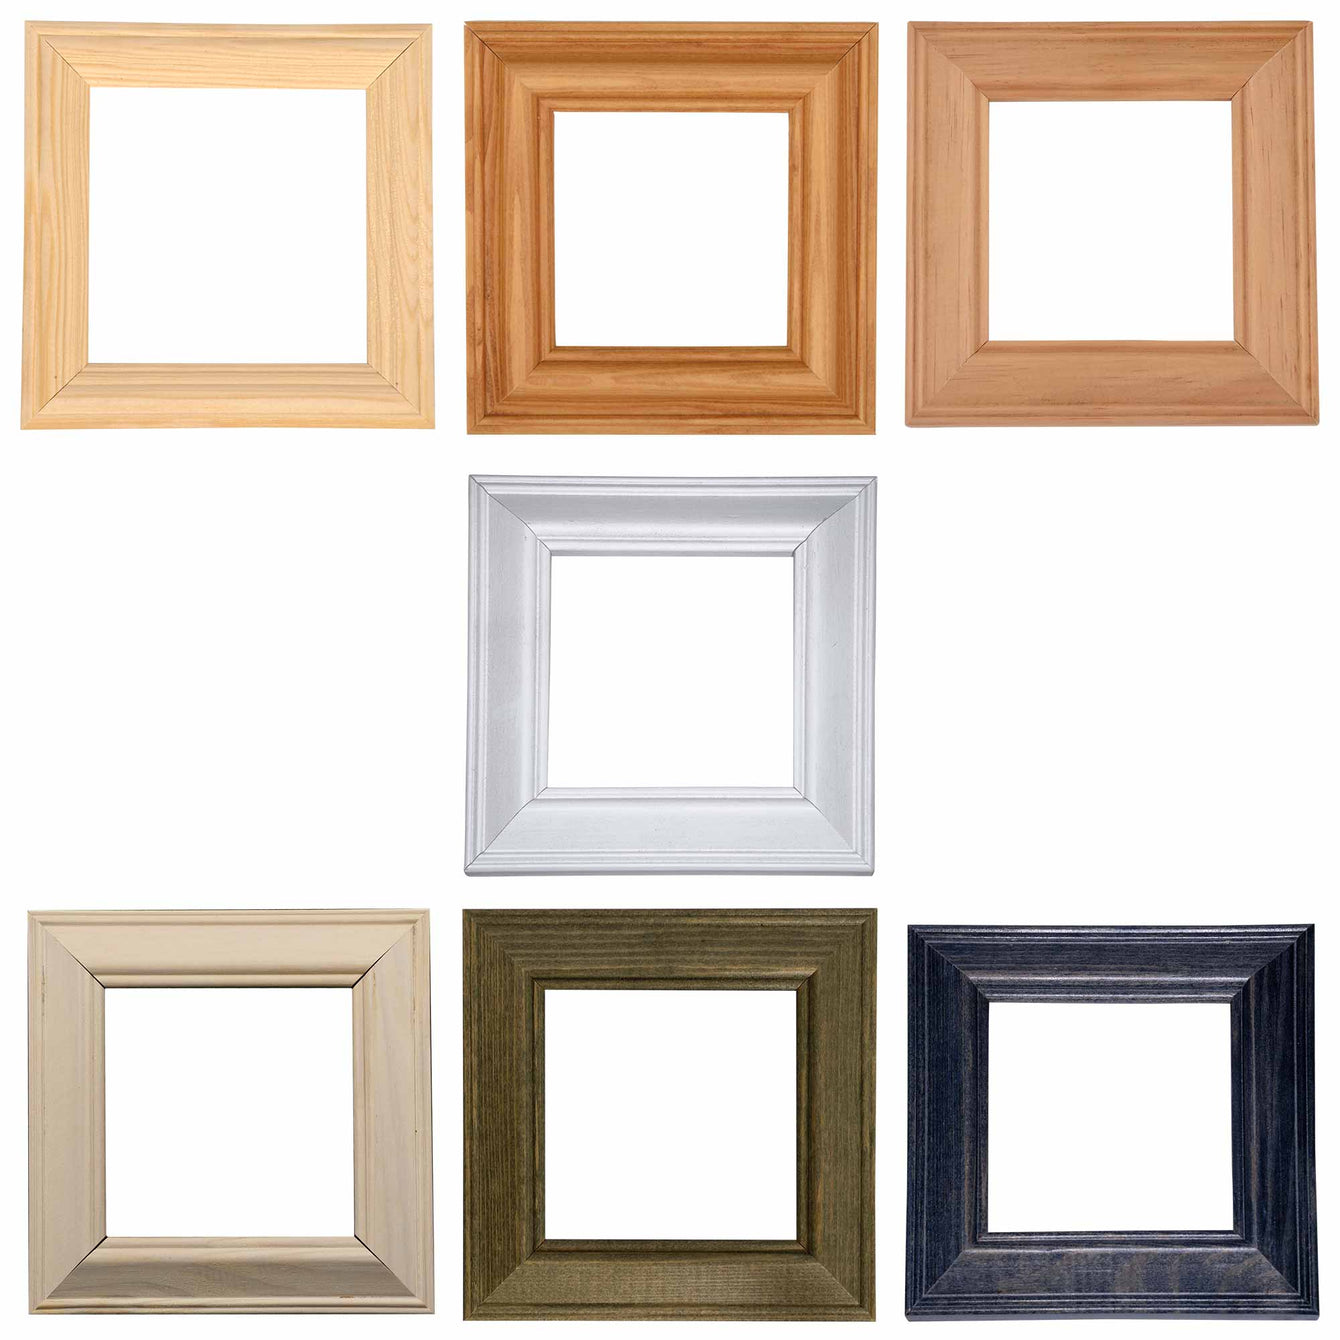 ElekTek Switch Surround Ovolo Frame Cover Finger Plate Pine Shades - Buy It Better Unfinished Pine